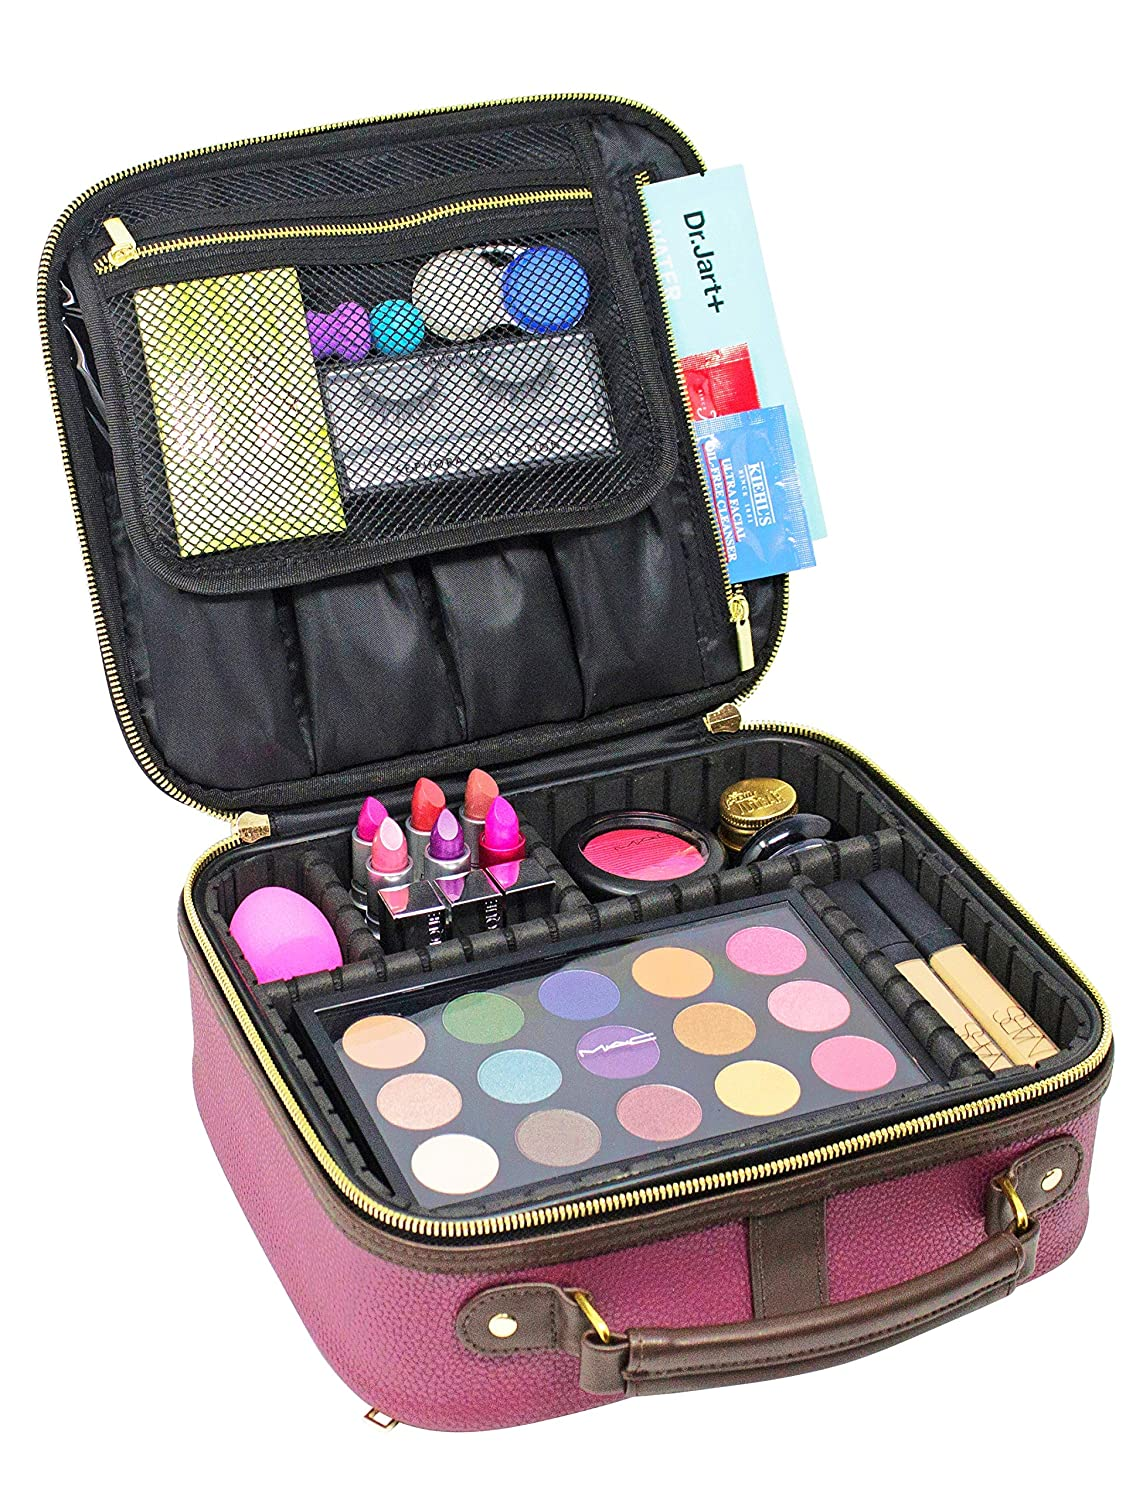 9210efc18d4 Waterproof Makeup Bag and Train Case with Adjustable Dividers, Cosmetic  Case Organizer with Large Brush